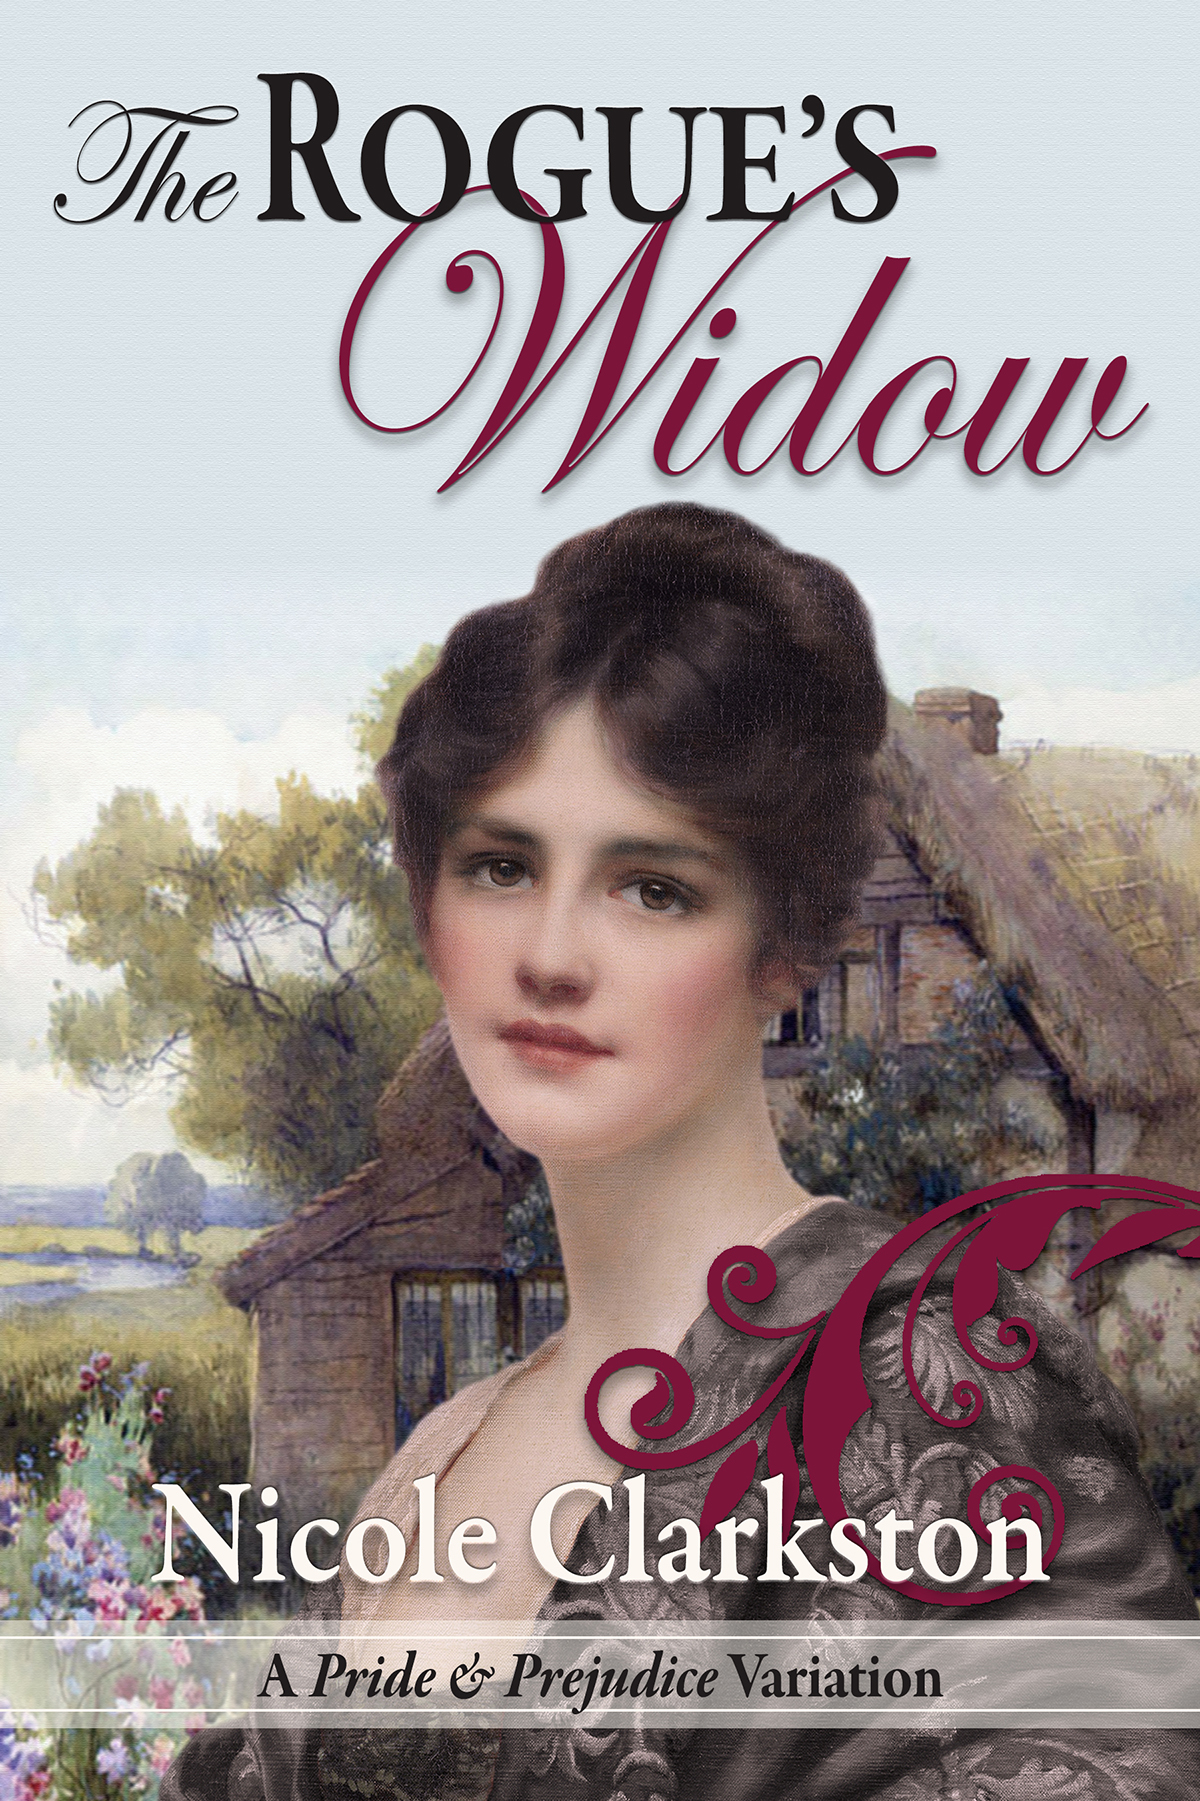 The Rogue's Widow by Nicole Clarkston 2020